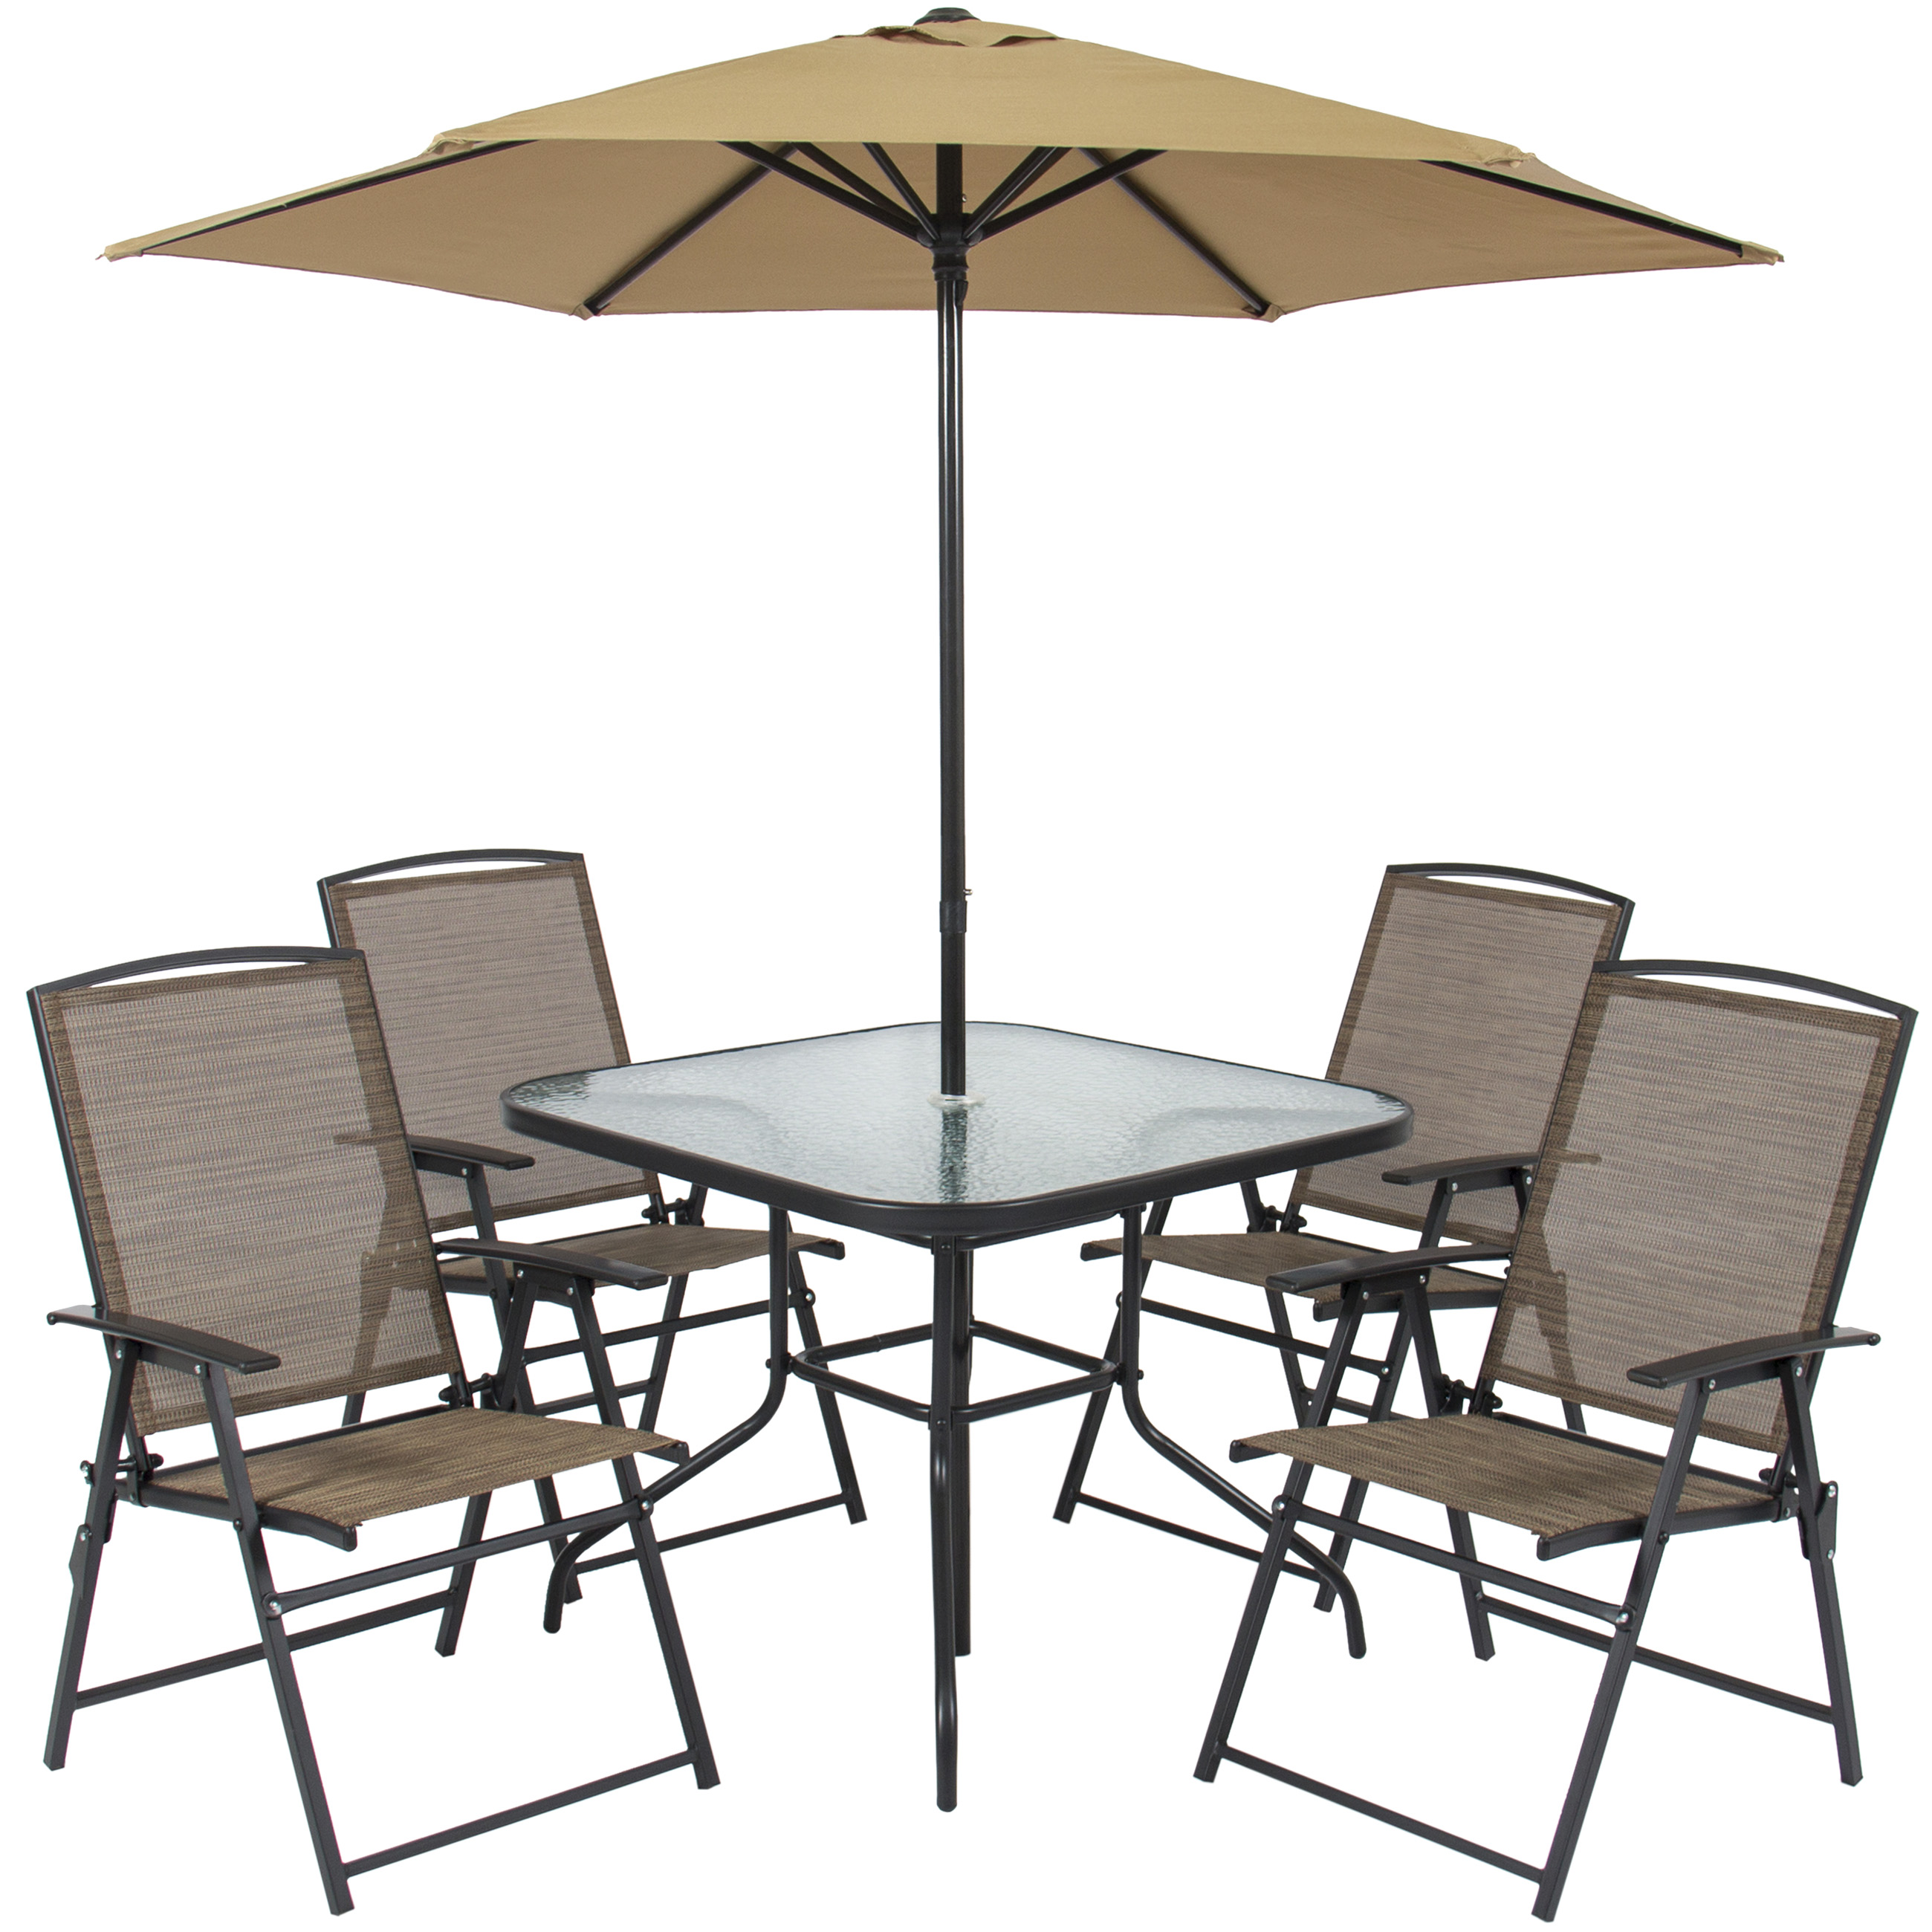 Best Choice Products 6-Piece Outdoor Folding Patio Dining Set w/ Table 4 Chairs Umbrella and Built-In Base -Tan - Walmart.com  sc 1 st  Walmart & Best Choice Products 6-Piece Outdoor Folding Patio Dining Set w ...